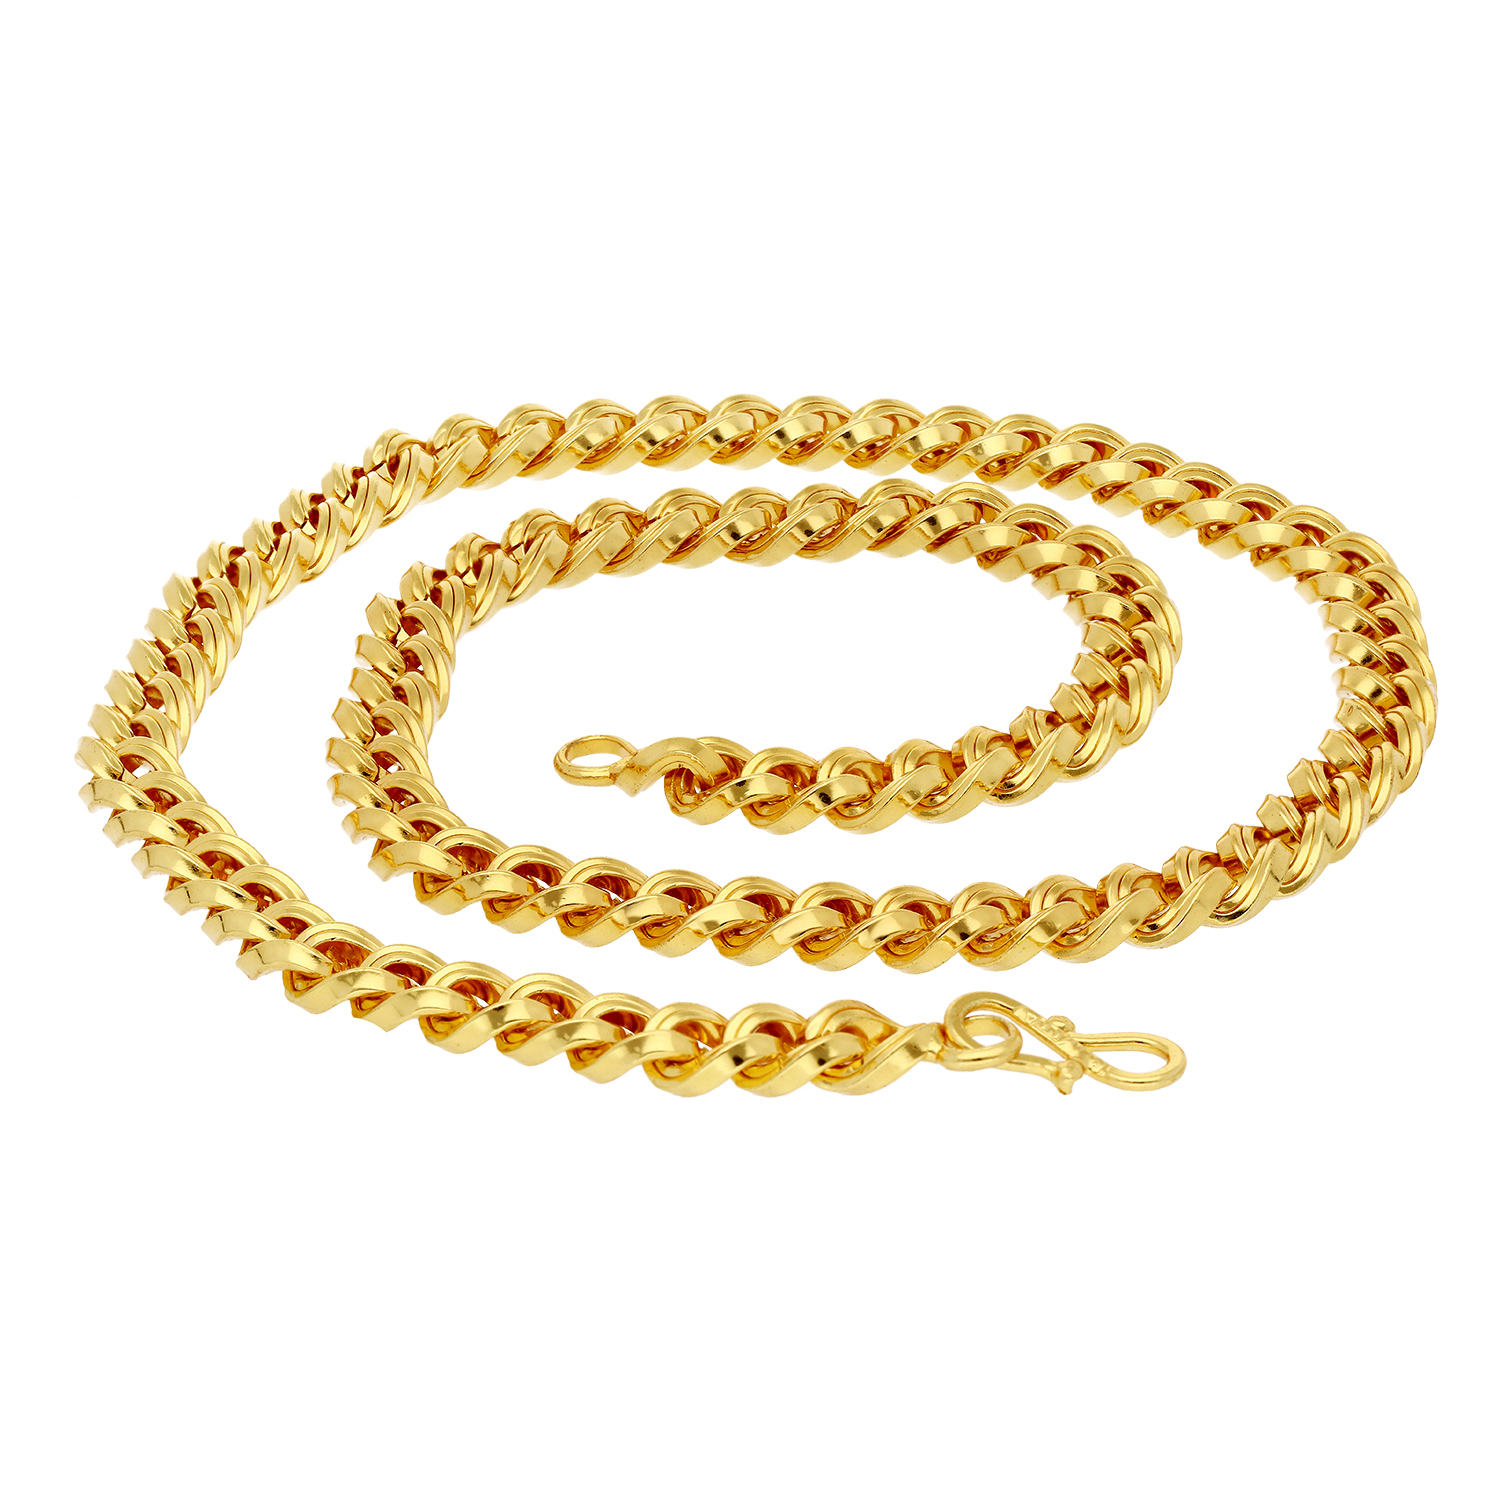 SUKKHI | Sukkhi Traditional Gold Plated Unisex Curb Chain